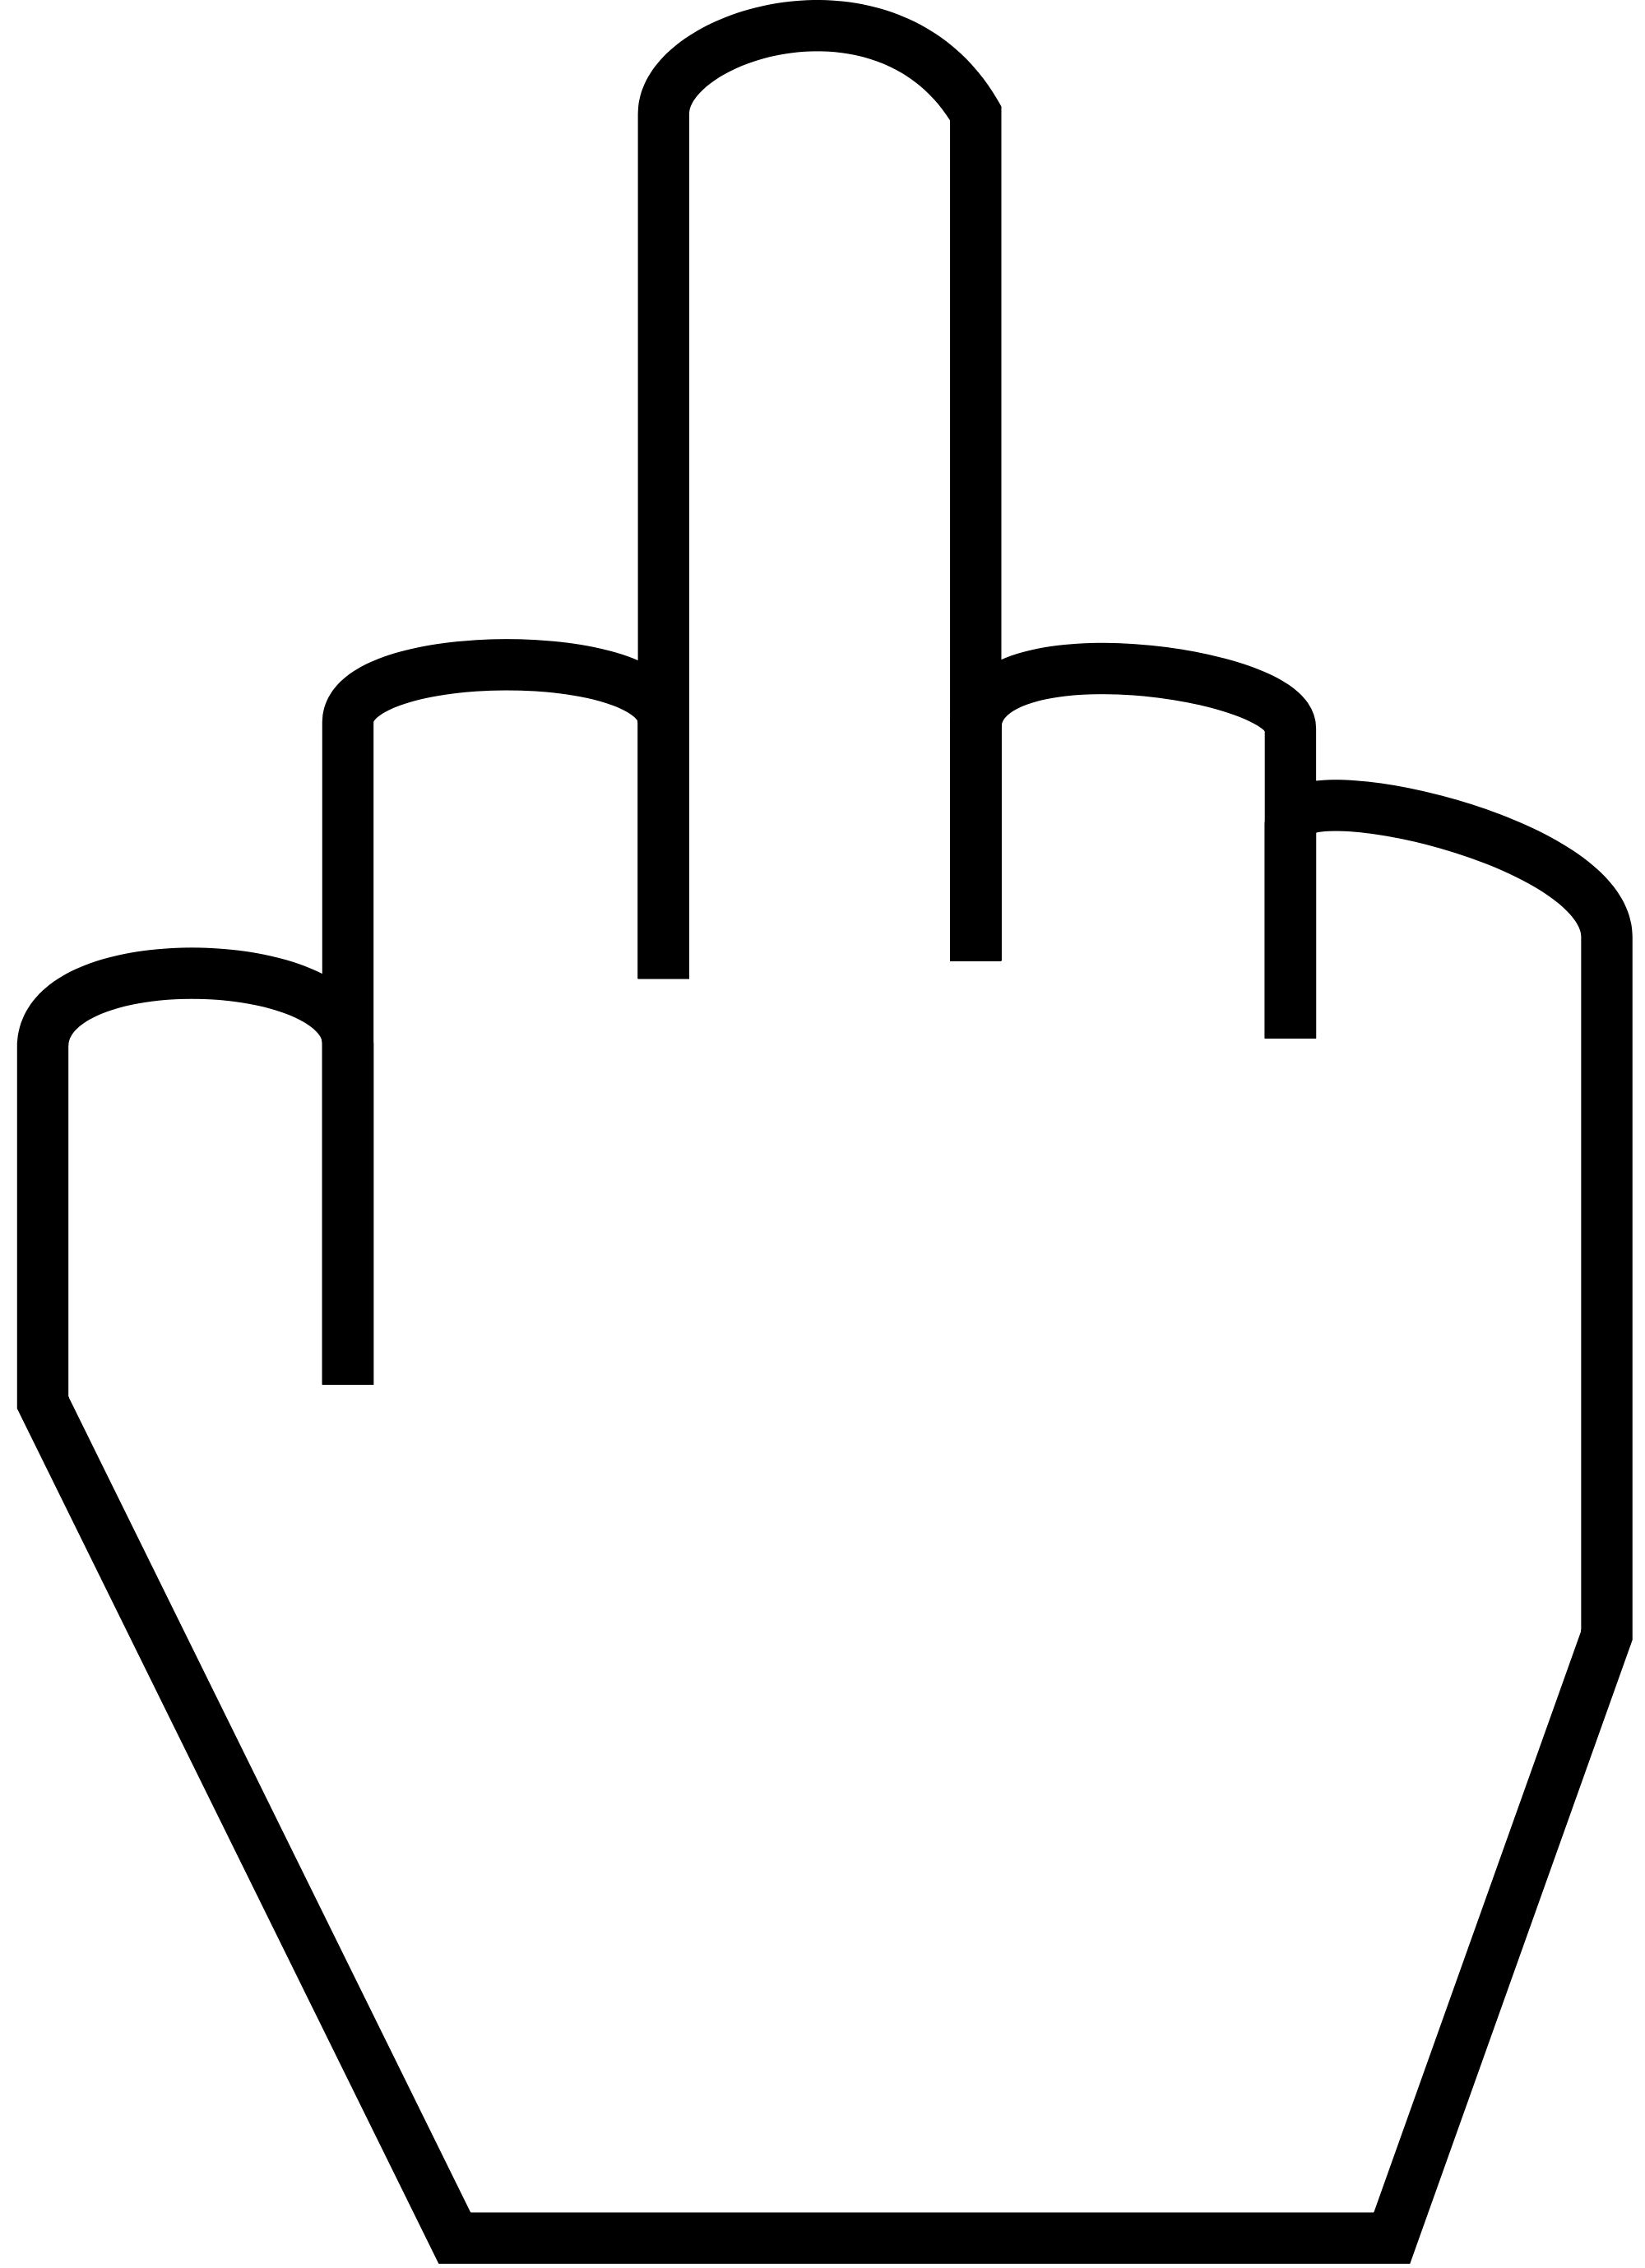 Fingers clipart czar. File the middle finger